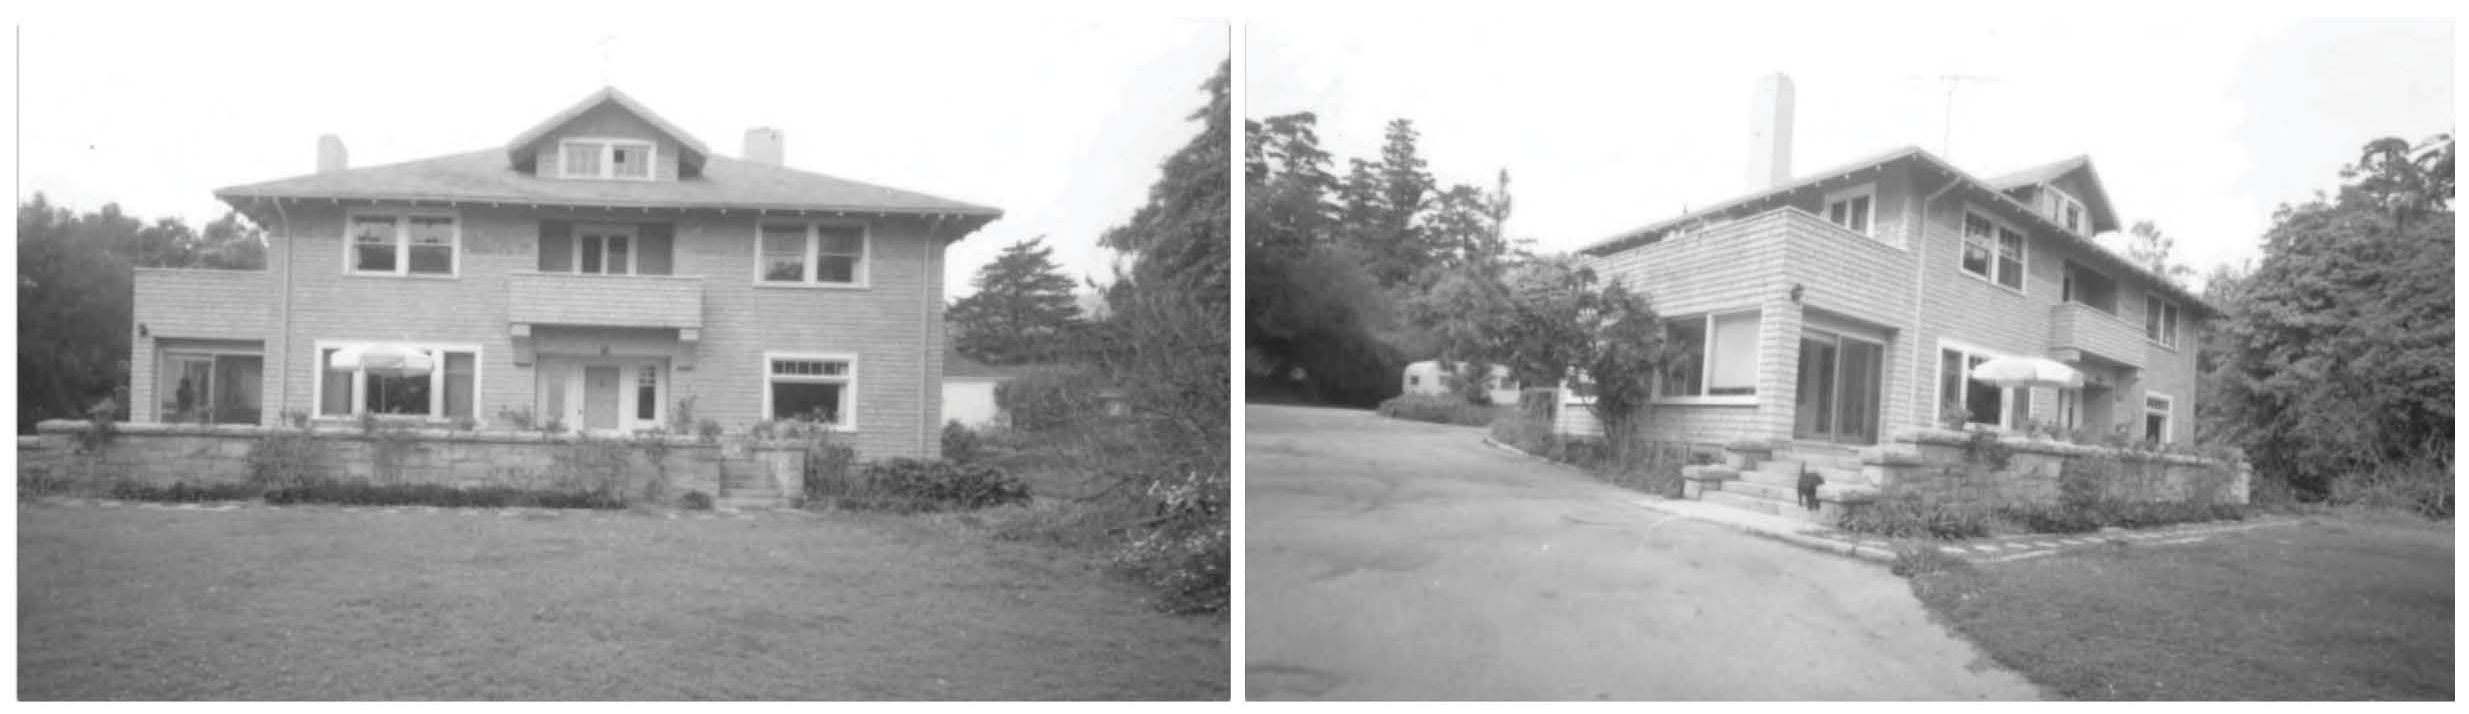 The historic Oglivy house in Montecito circa 1952